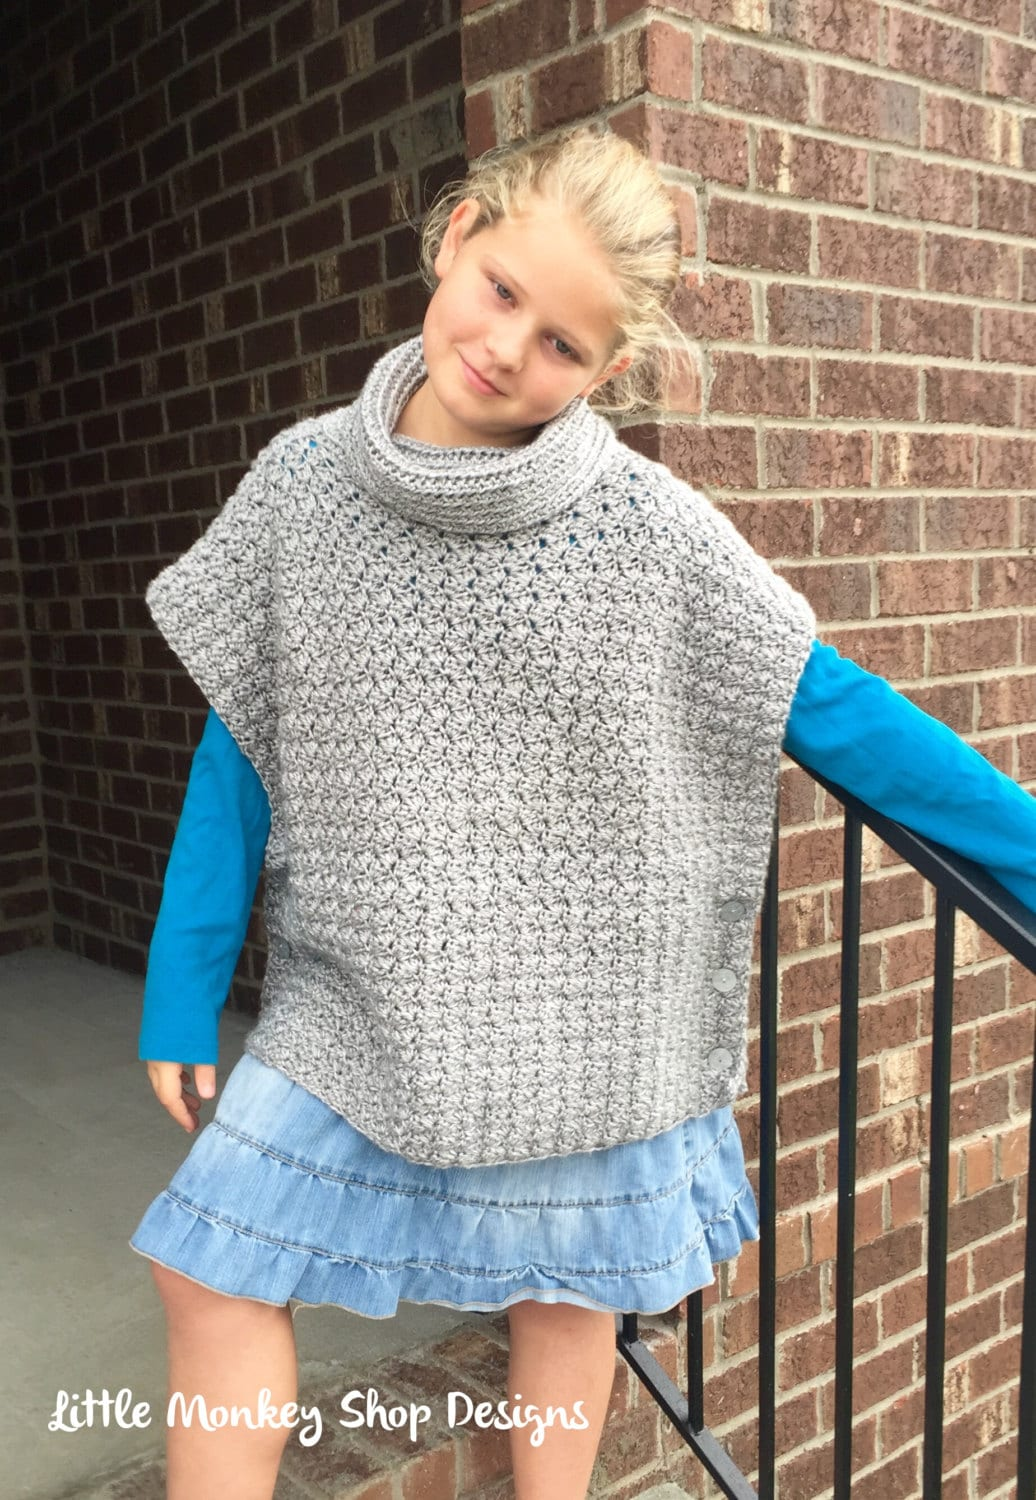 Free Crochet Patterns For Cowl Neck Poncho : Crochet Poncho PATTERN girls Cowl Neck Poncho by ...